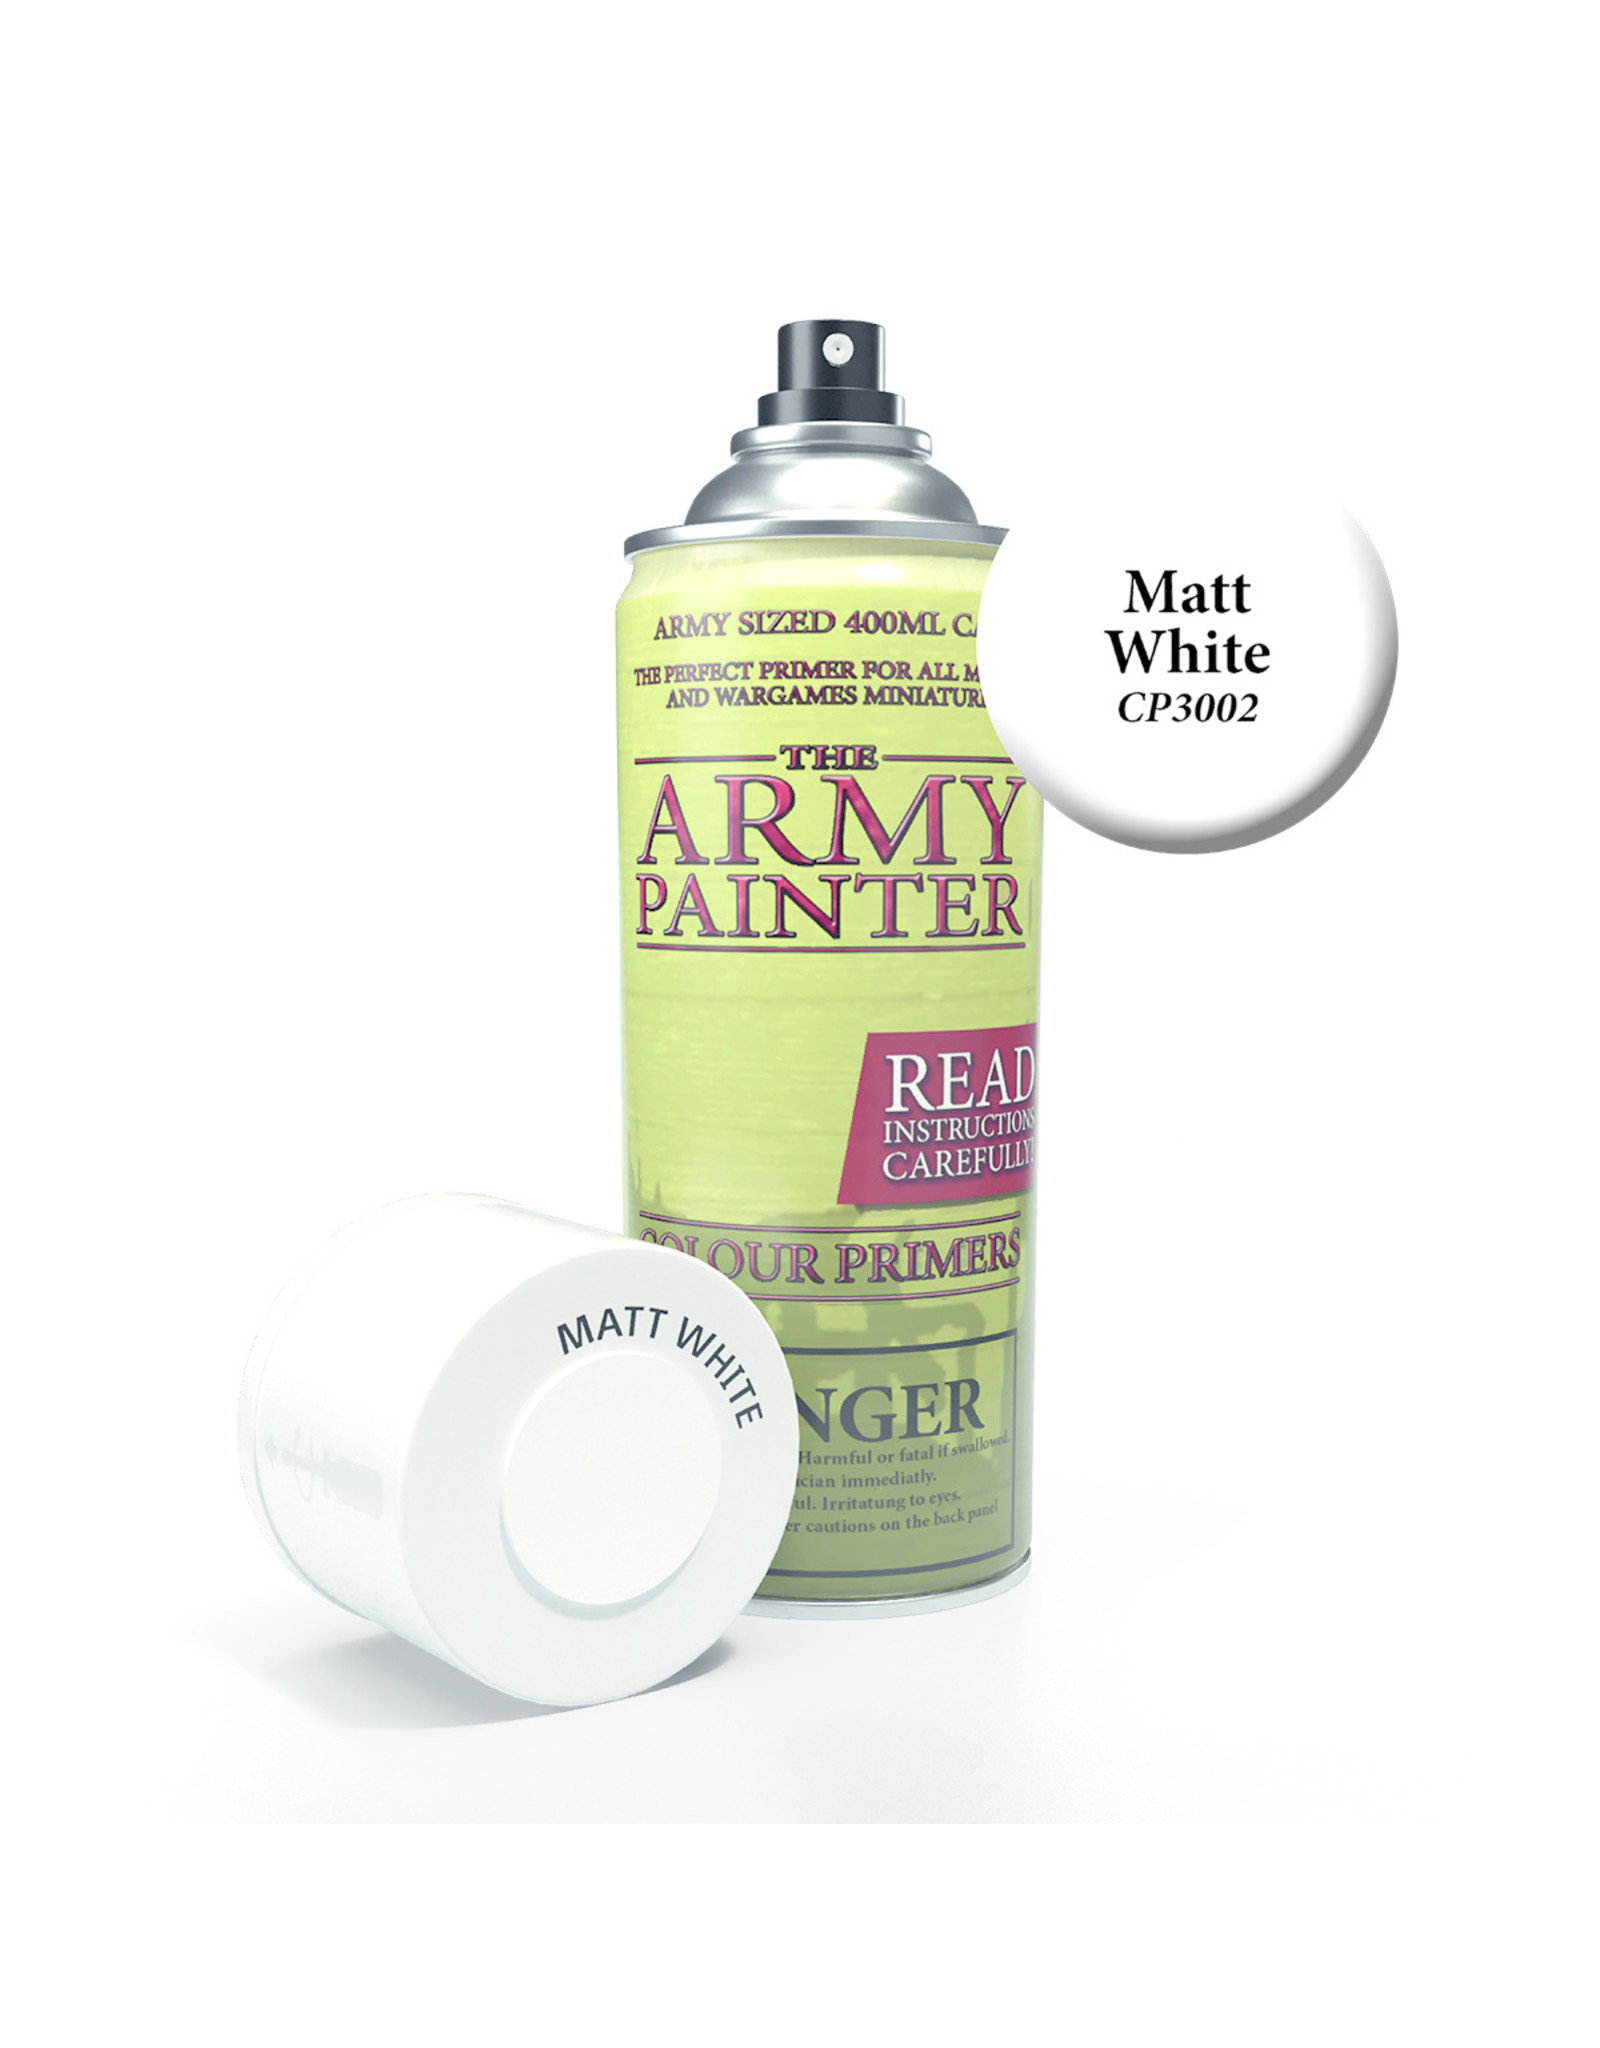 Army Painter TAP Primer - Matt White Spray